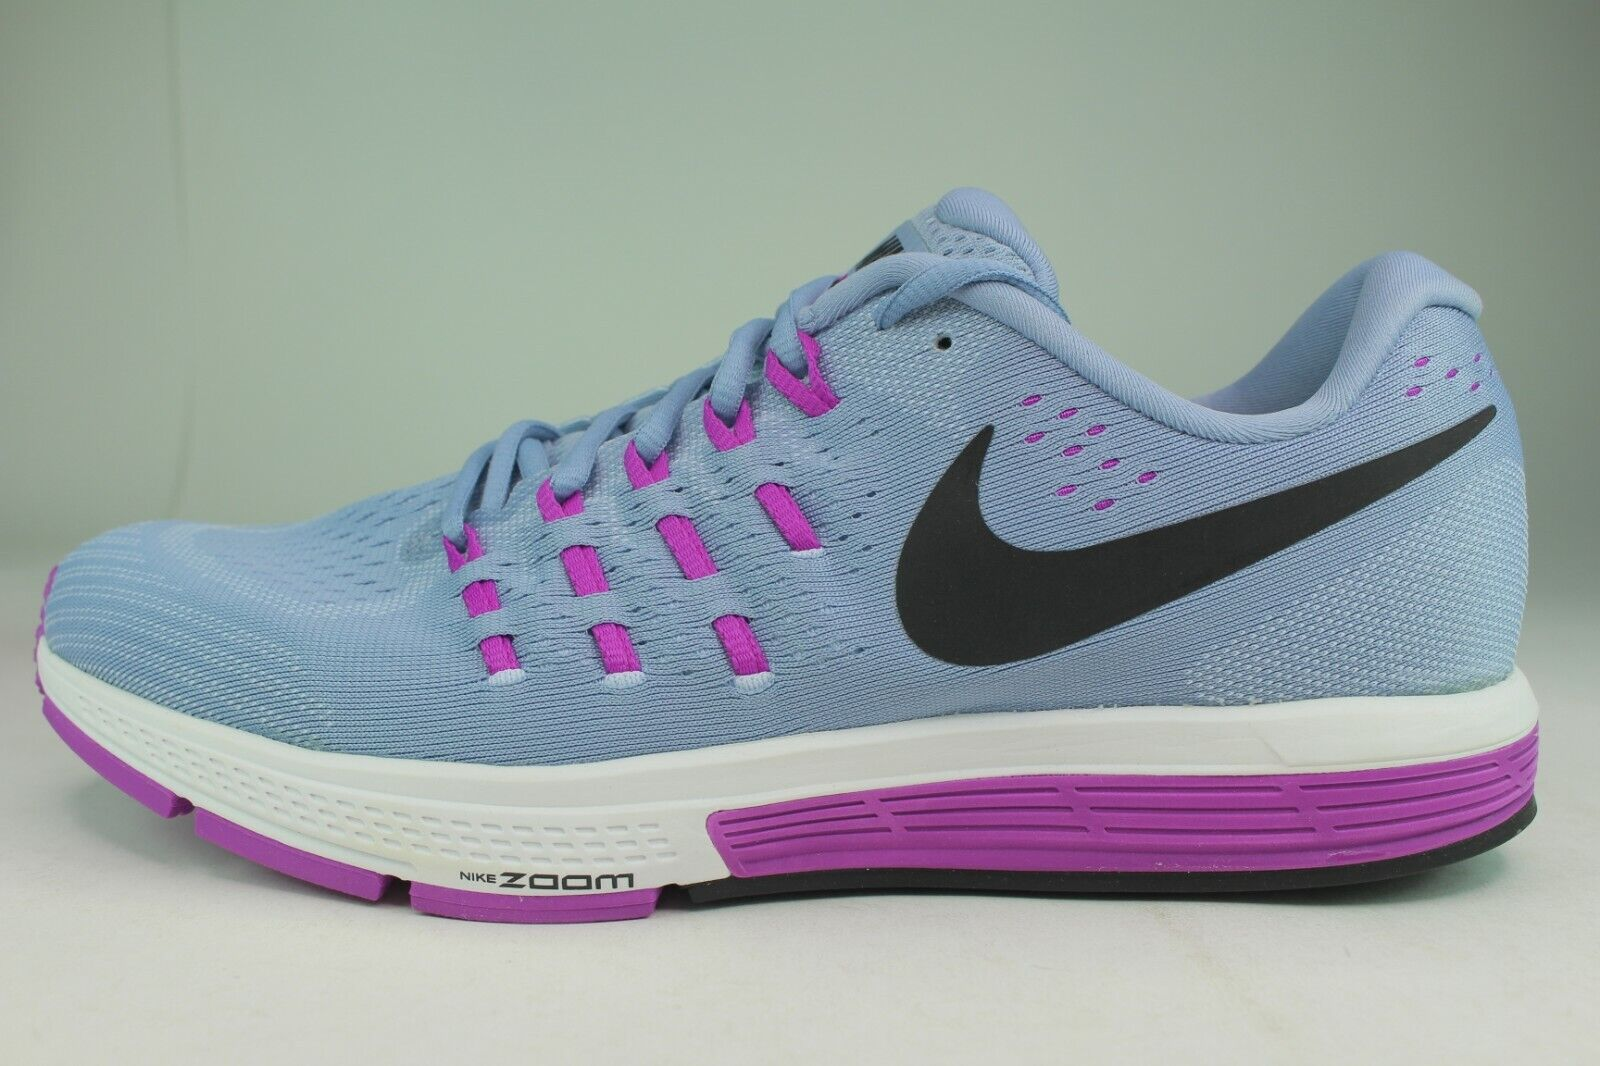 ZOOM AIR NIKE VOMERO NEW RUNNING RARE COMFORTABLE gris azul